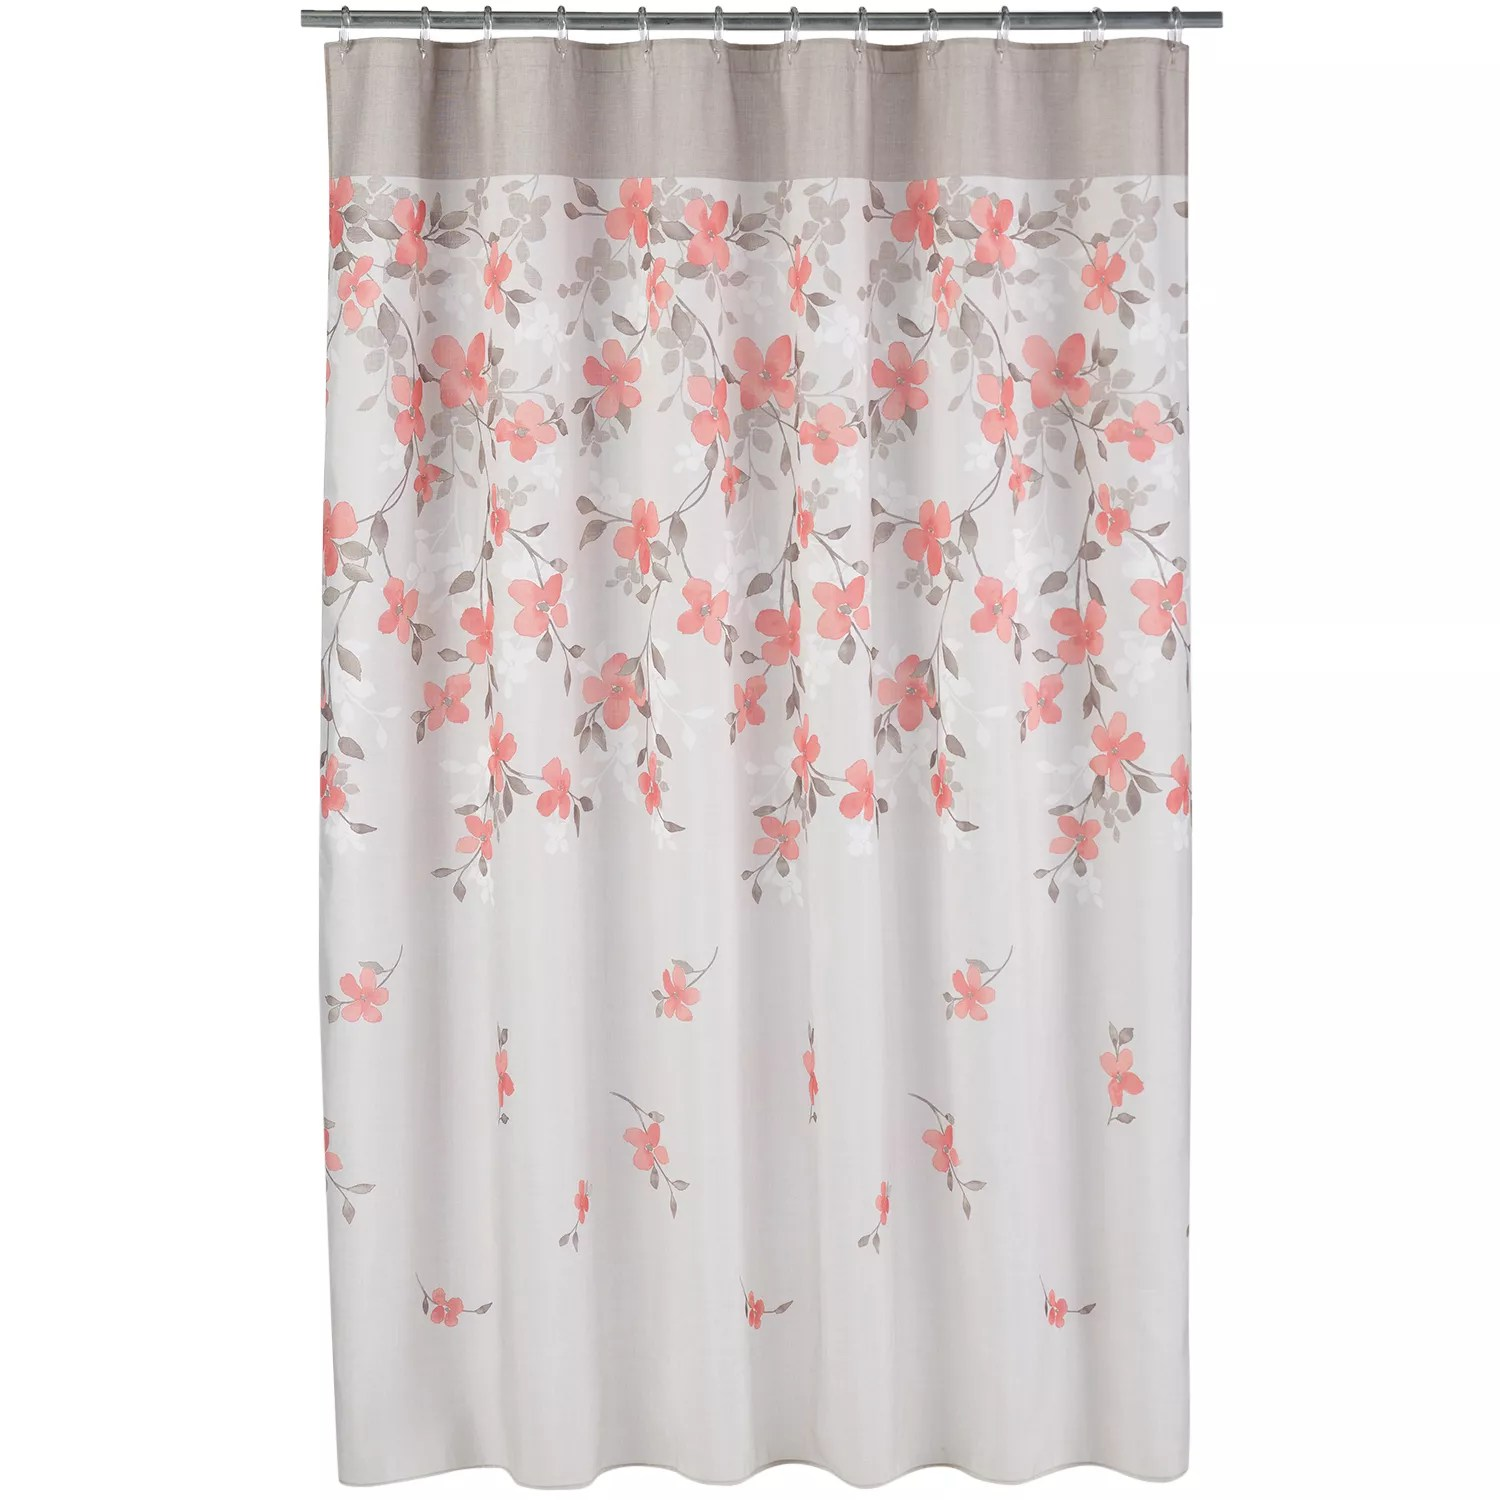 Coral Garden Floral Fabric Shower Curtain